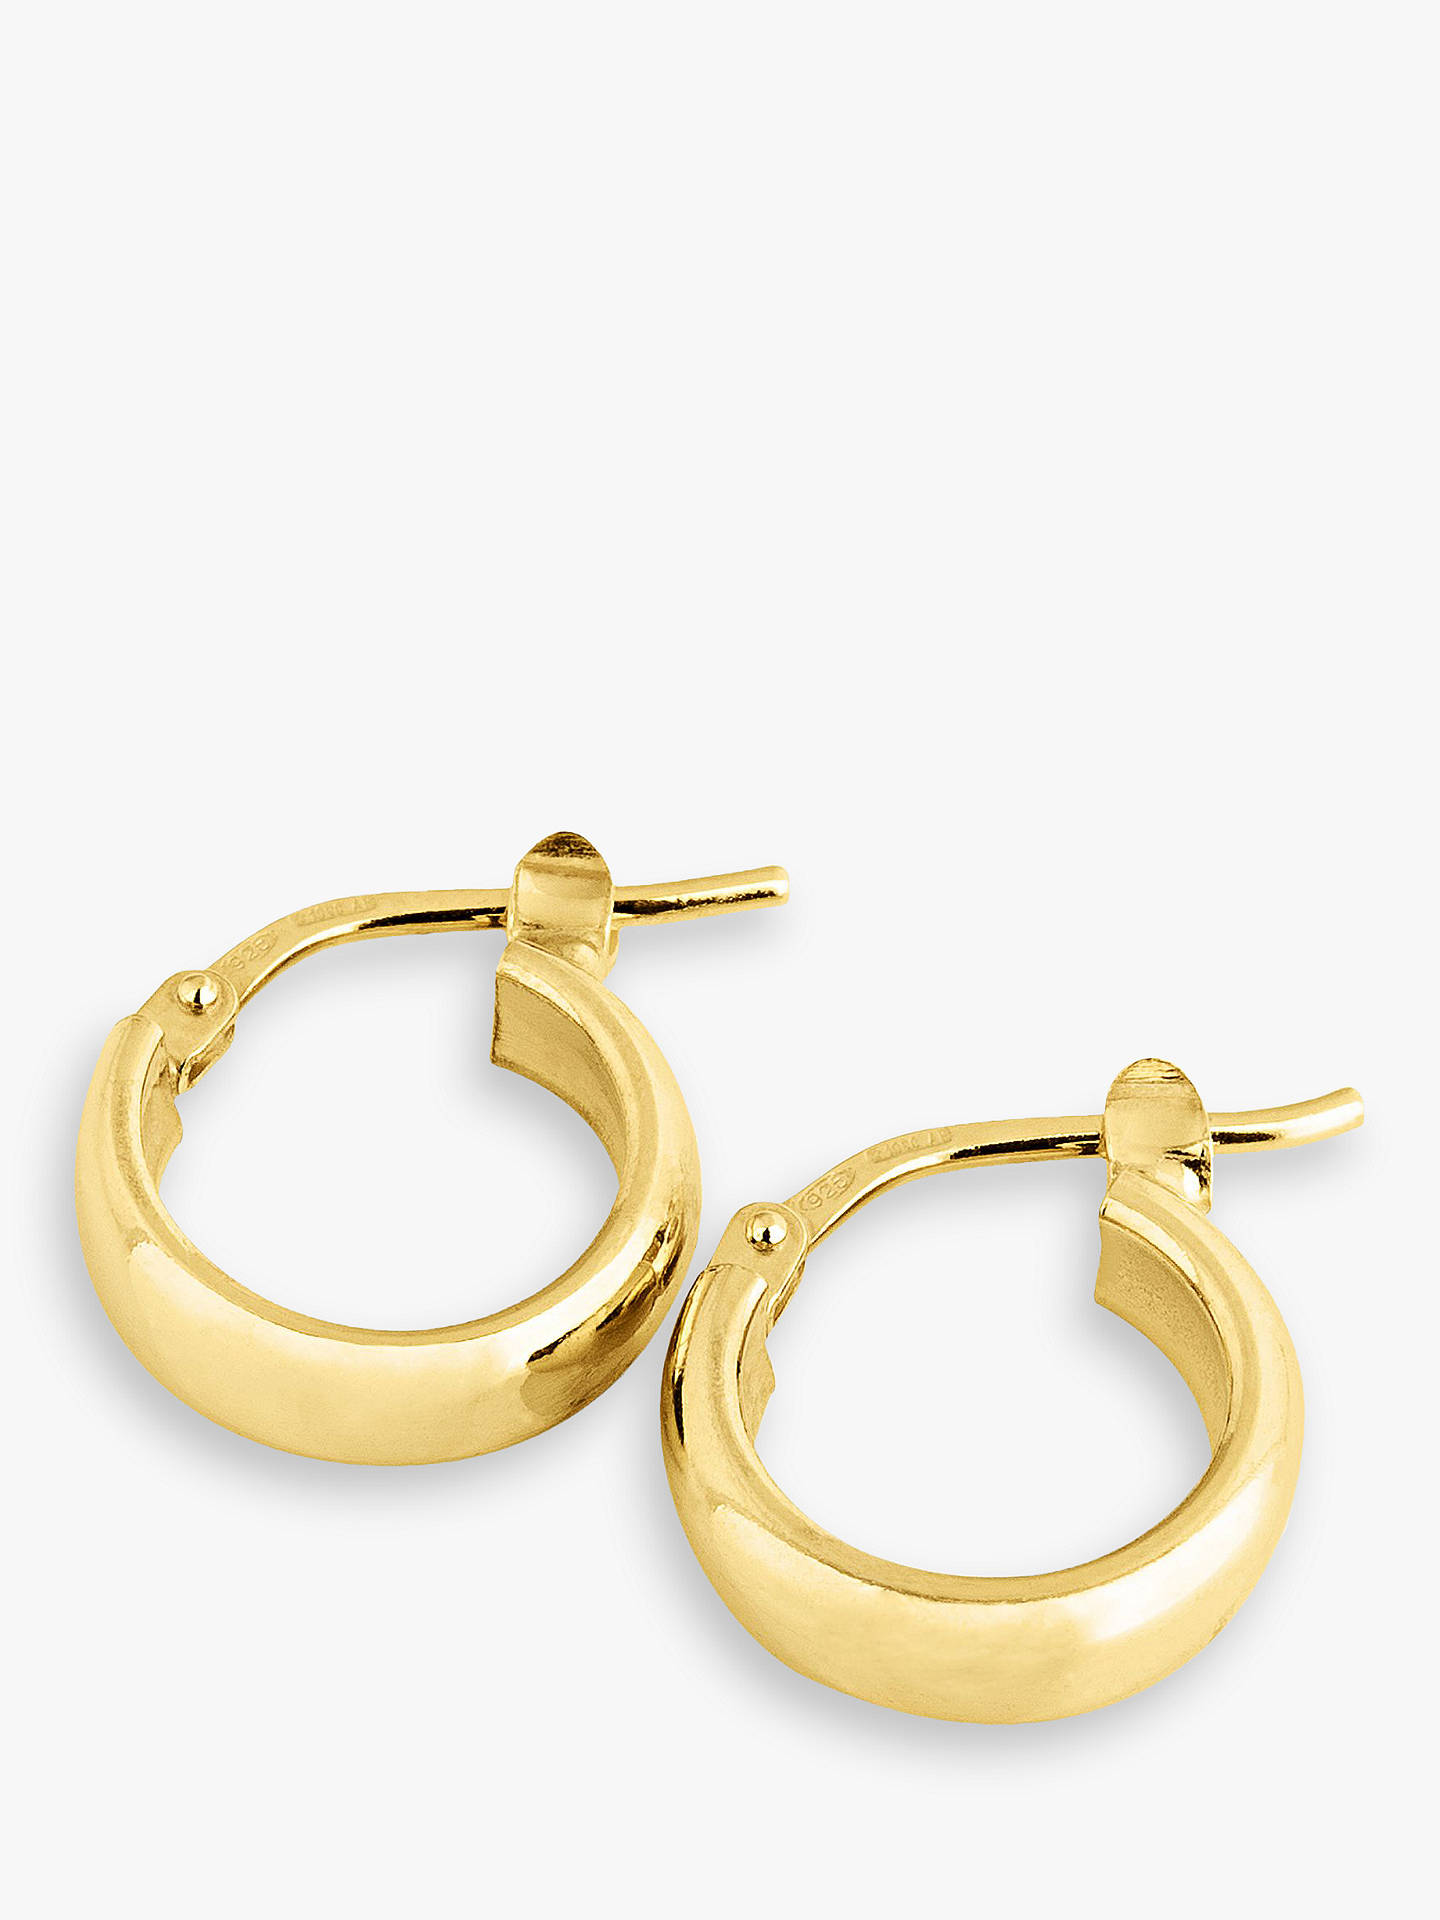 fb40da07b Buy The Hoop Station La Elba Huggie Small Hoop Earrings, Gold Online at  johnlewis.